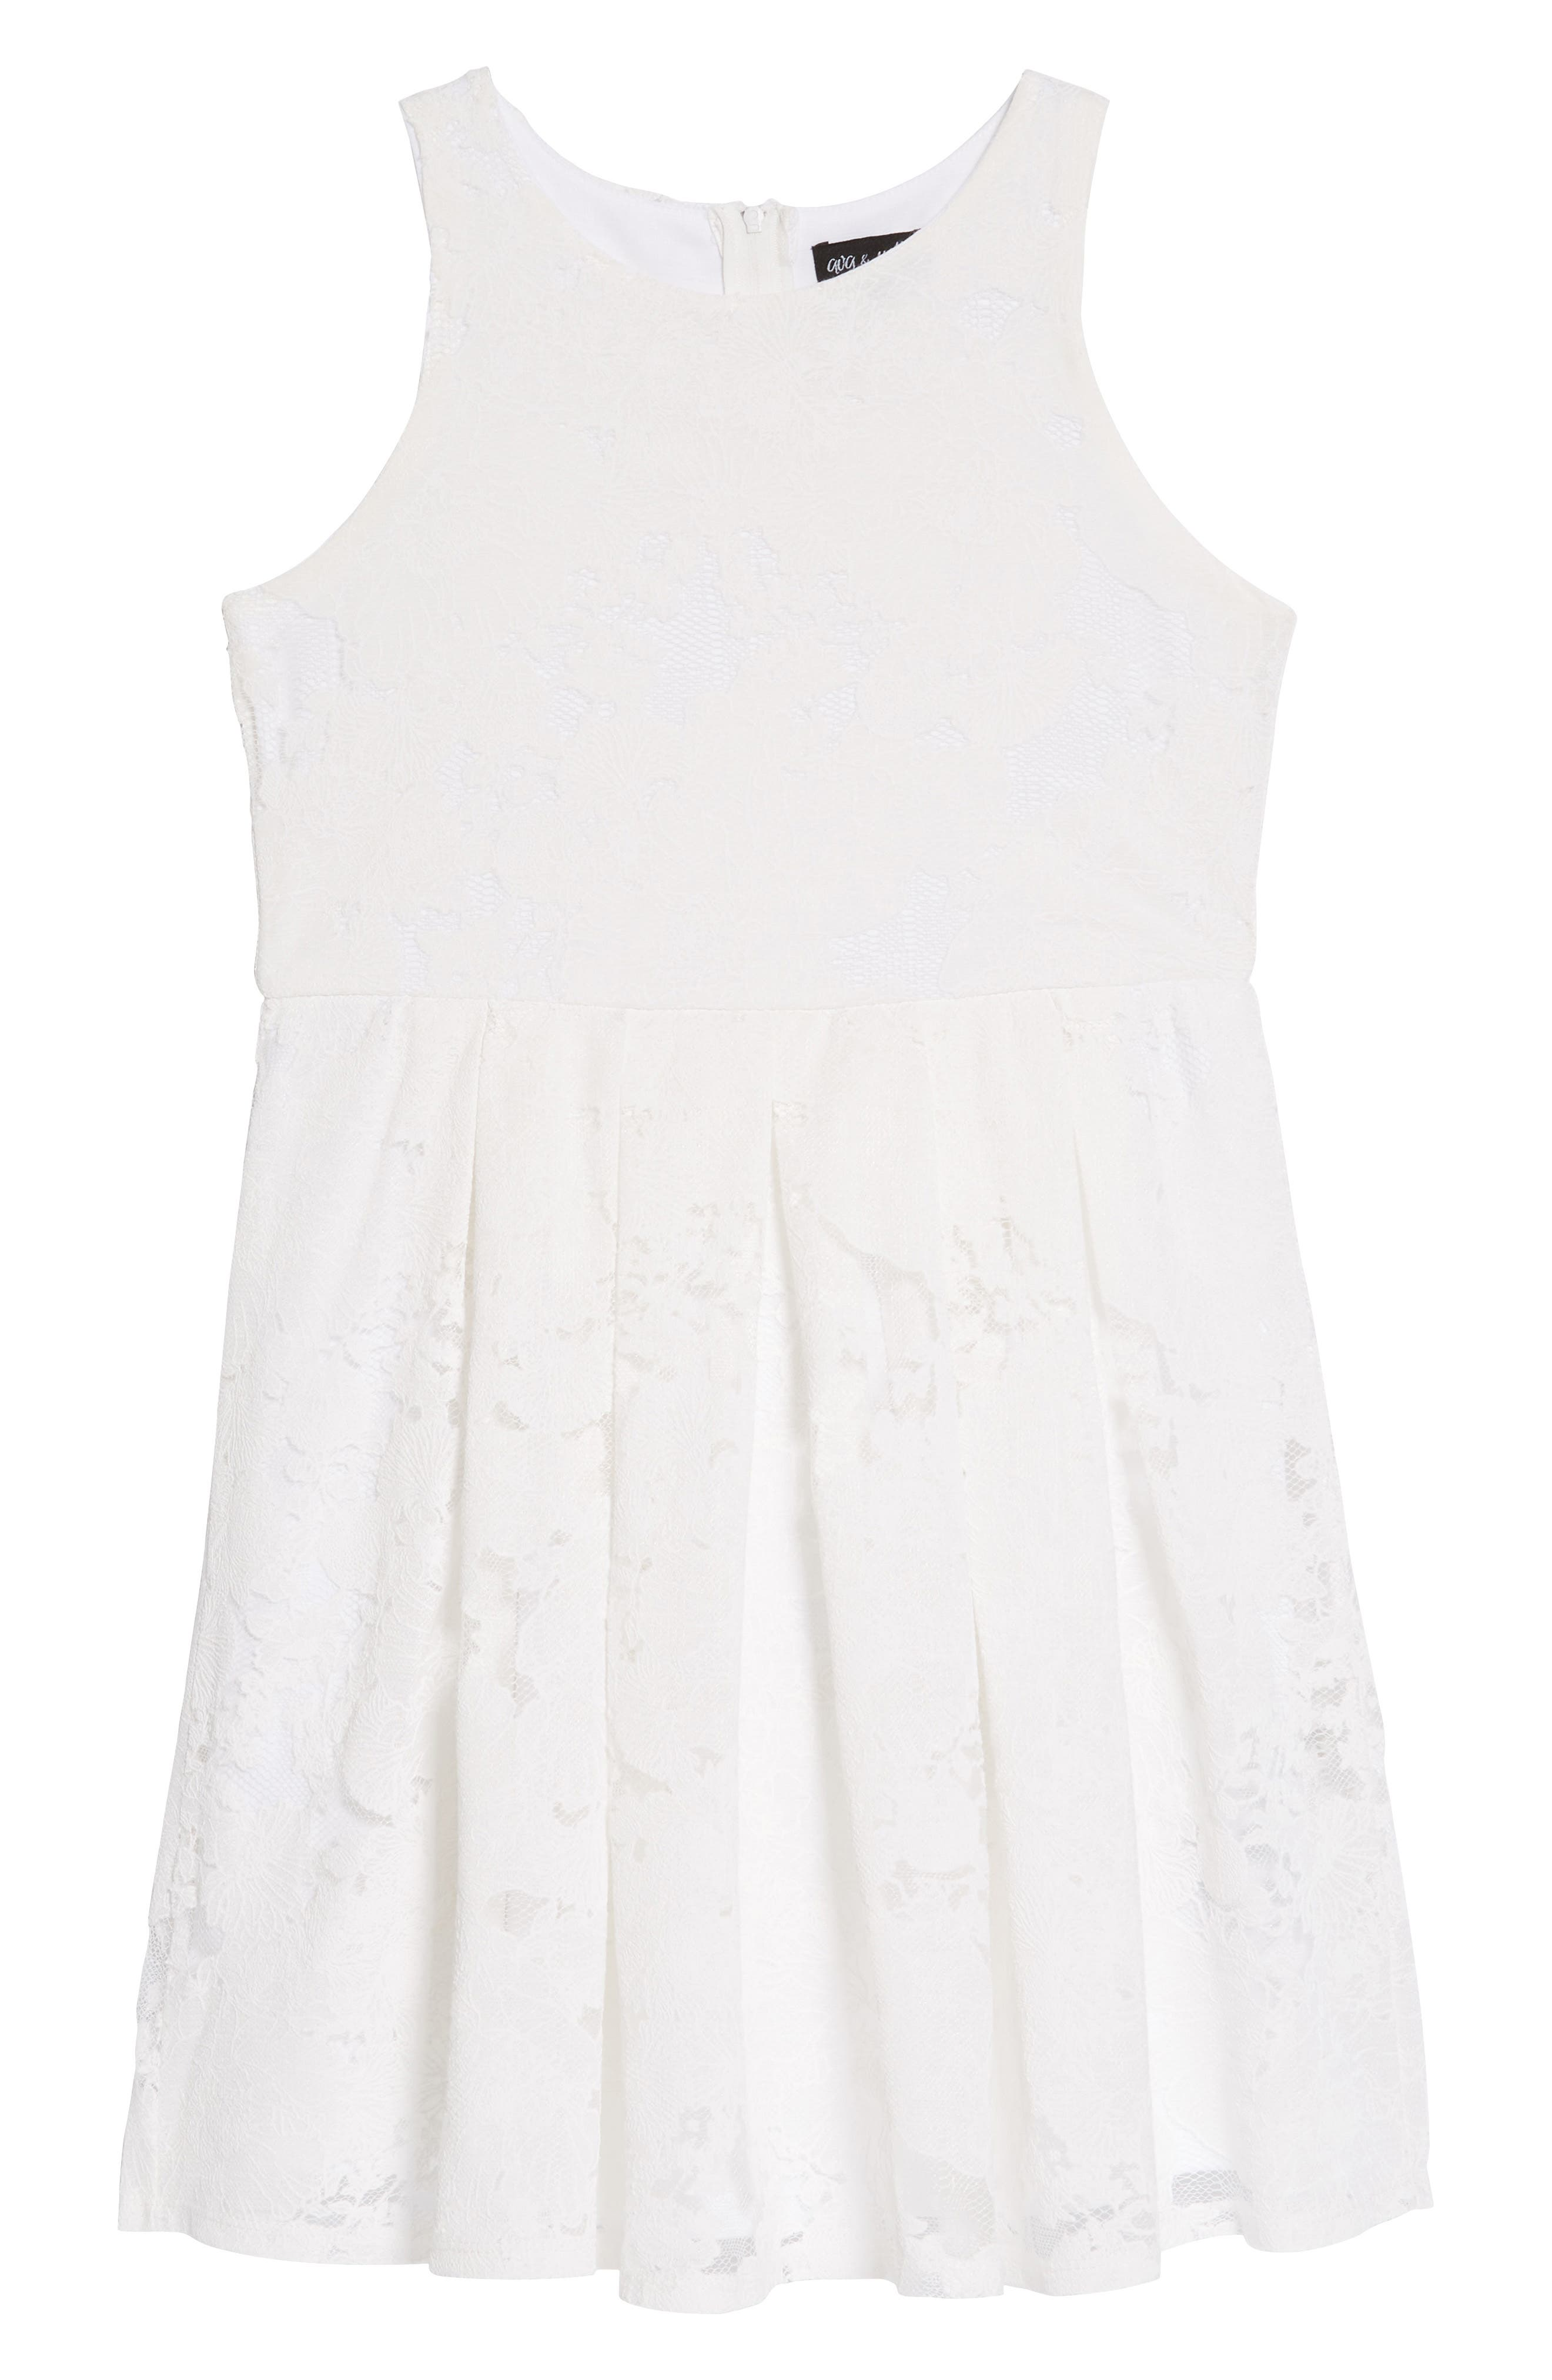 Ava & Yelly Lace Overlay Skater Dress (Big Girls)